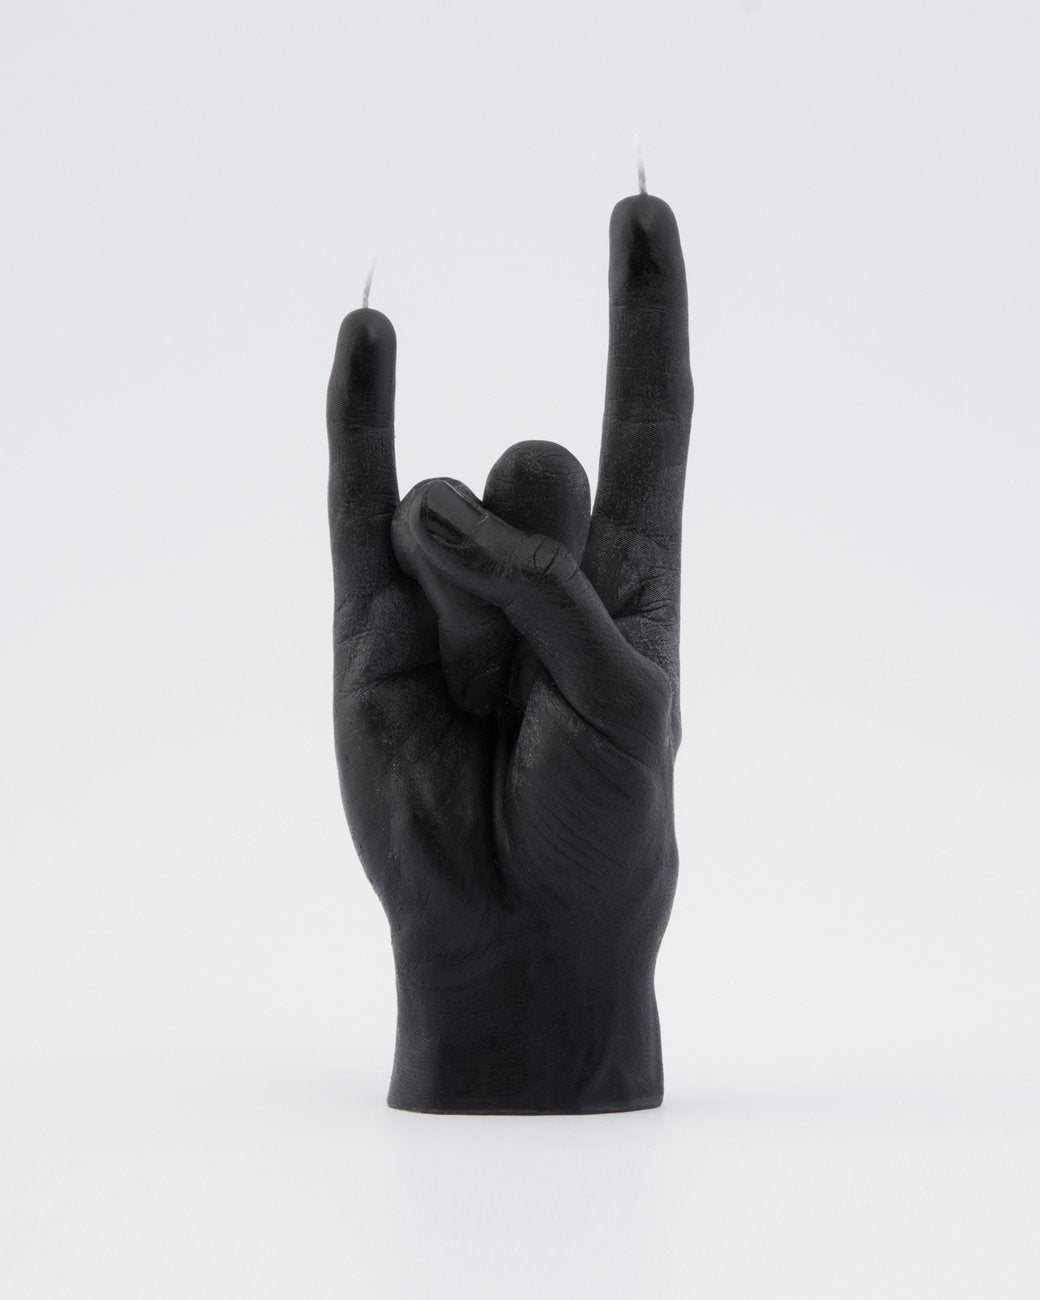 BEYOND LIVING | You Rock Candle Hand | Black